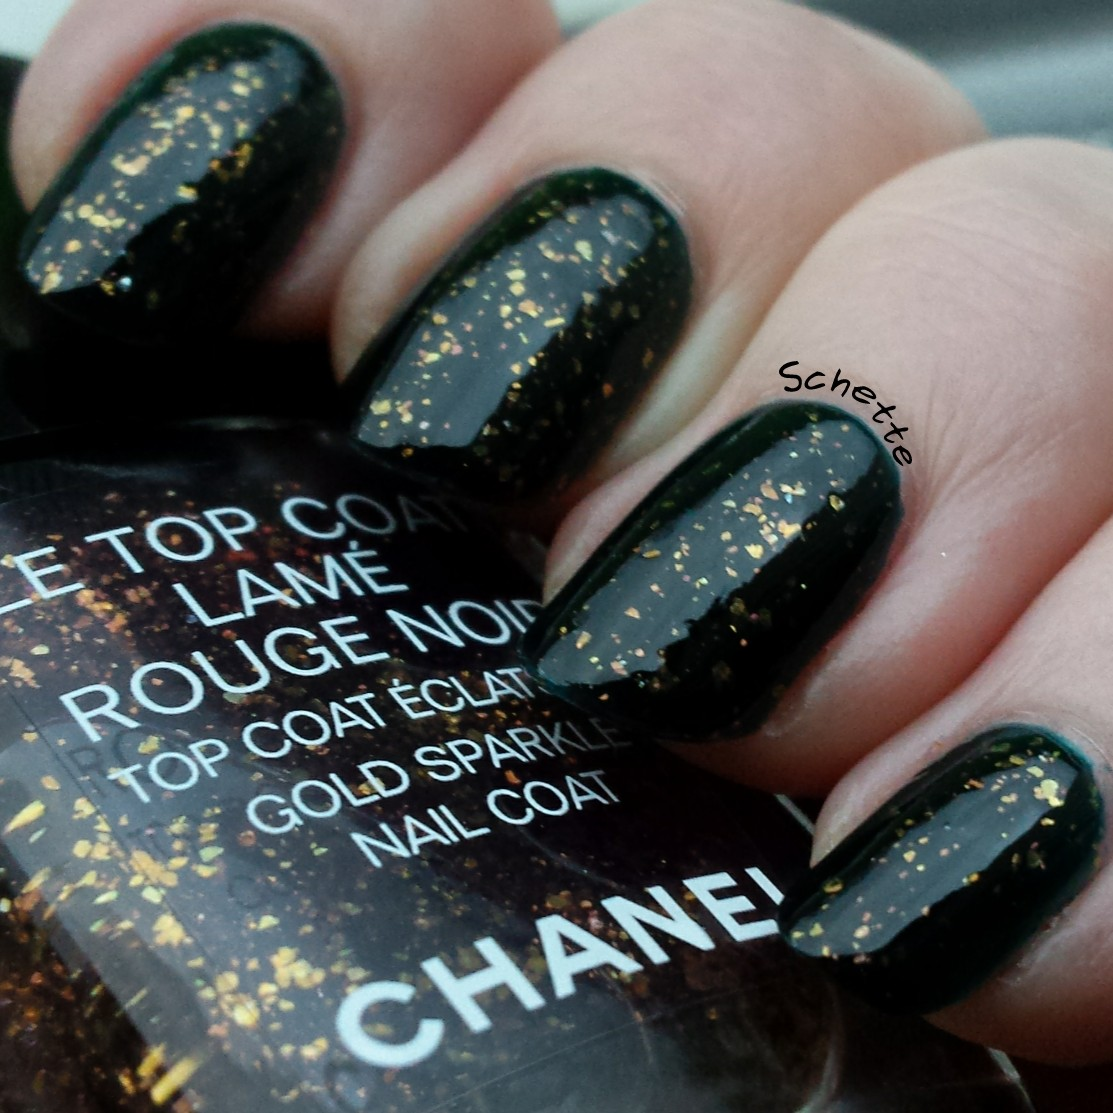 Chanel : Lame Rouge Noir